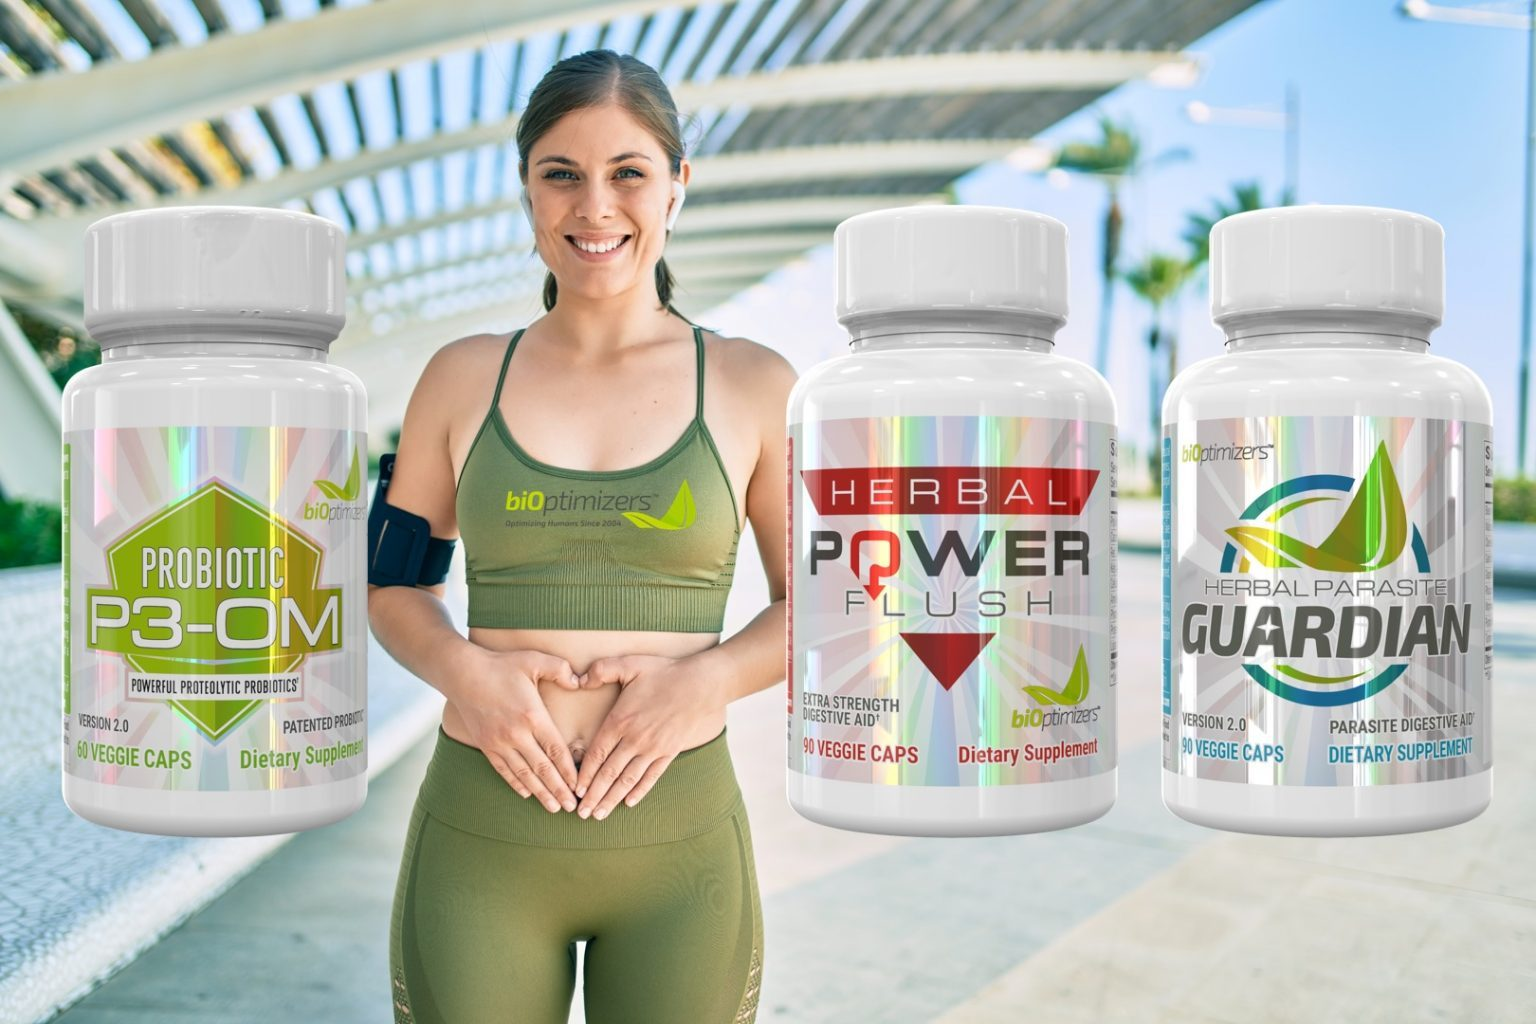 Gut health products